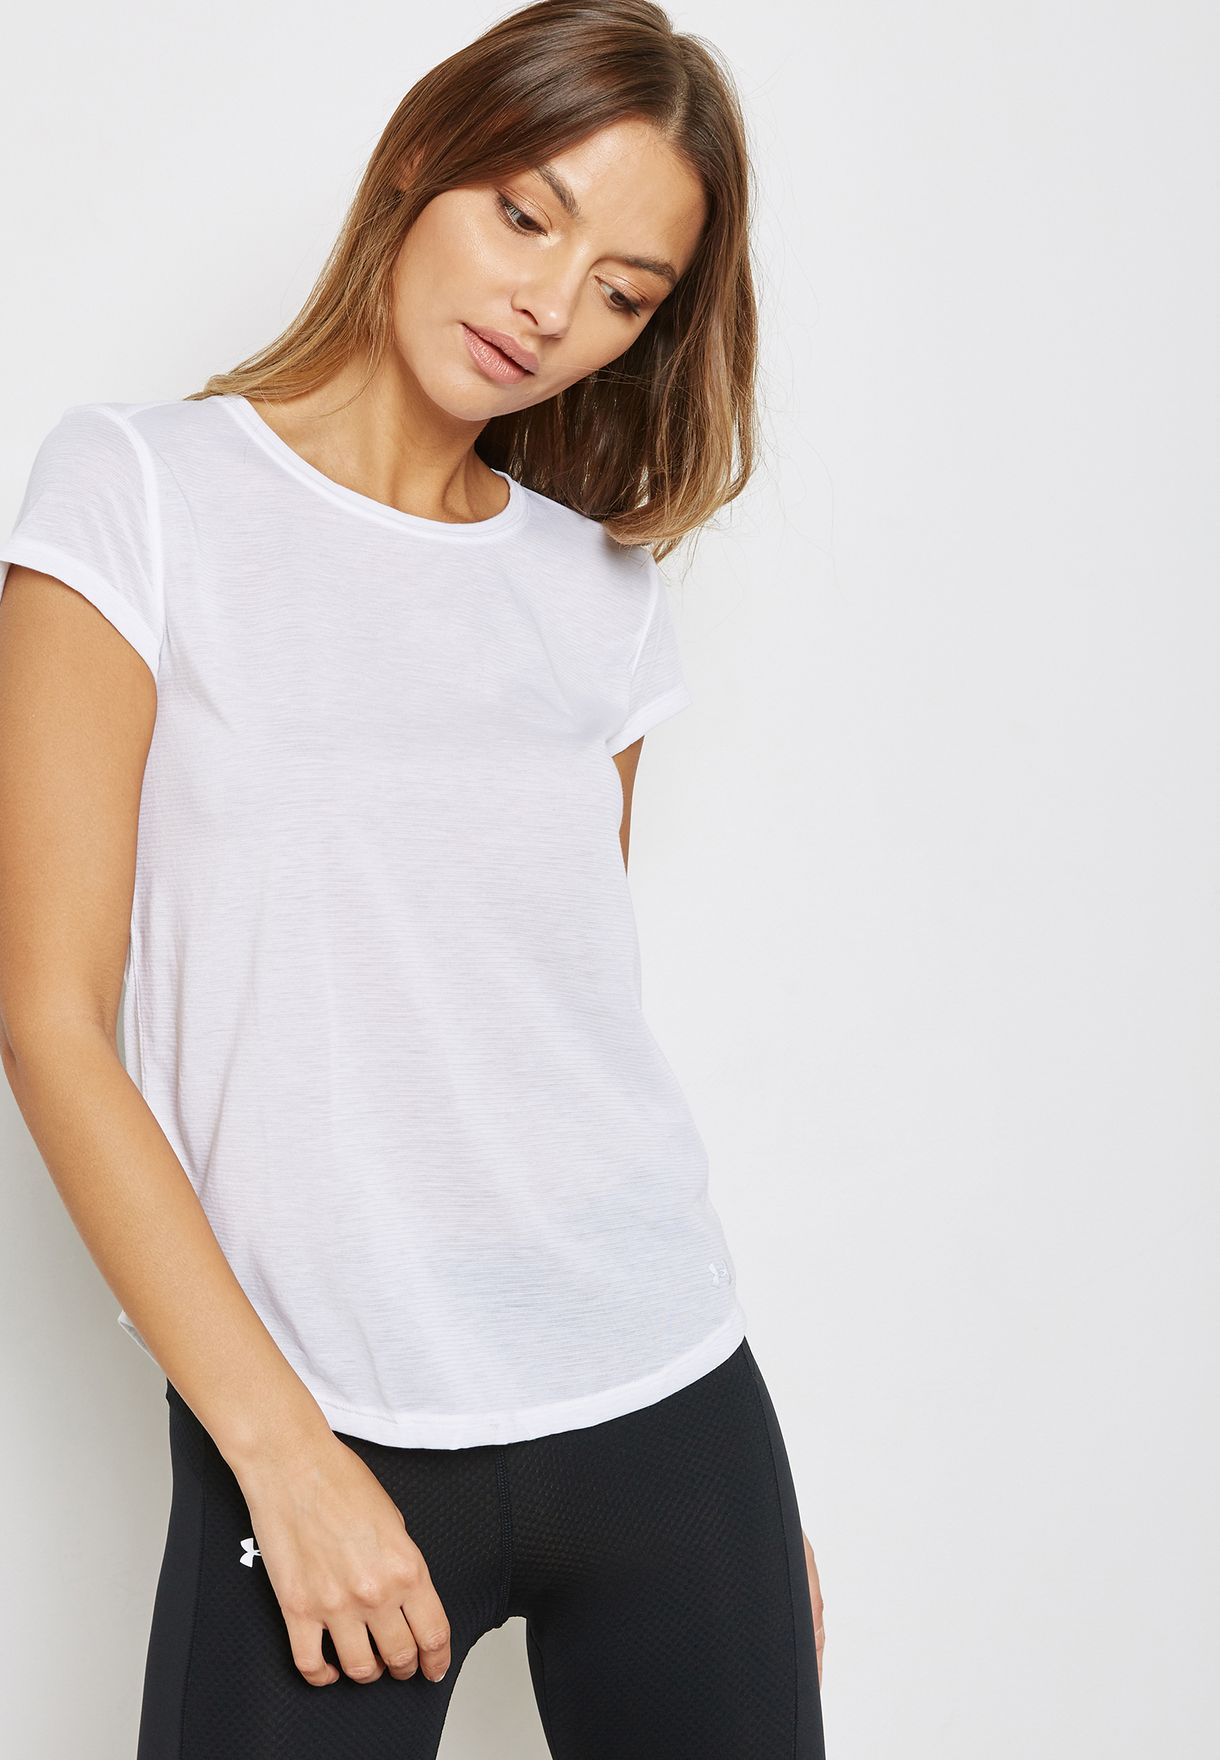 respuesta Deshabilitar garaje  Buy Under Armour white Threadborne Run Mesh T-Shirt for Women in MENA,  Worldwide | 1300188-100